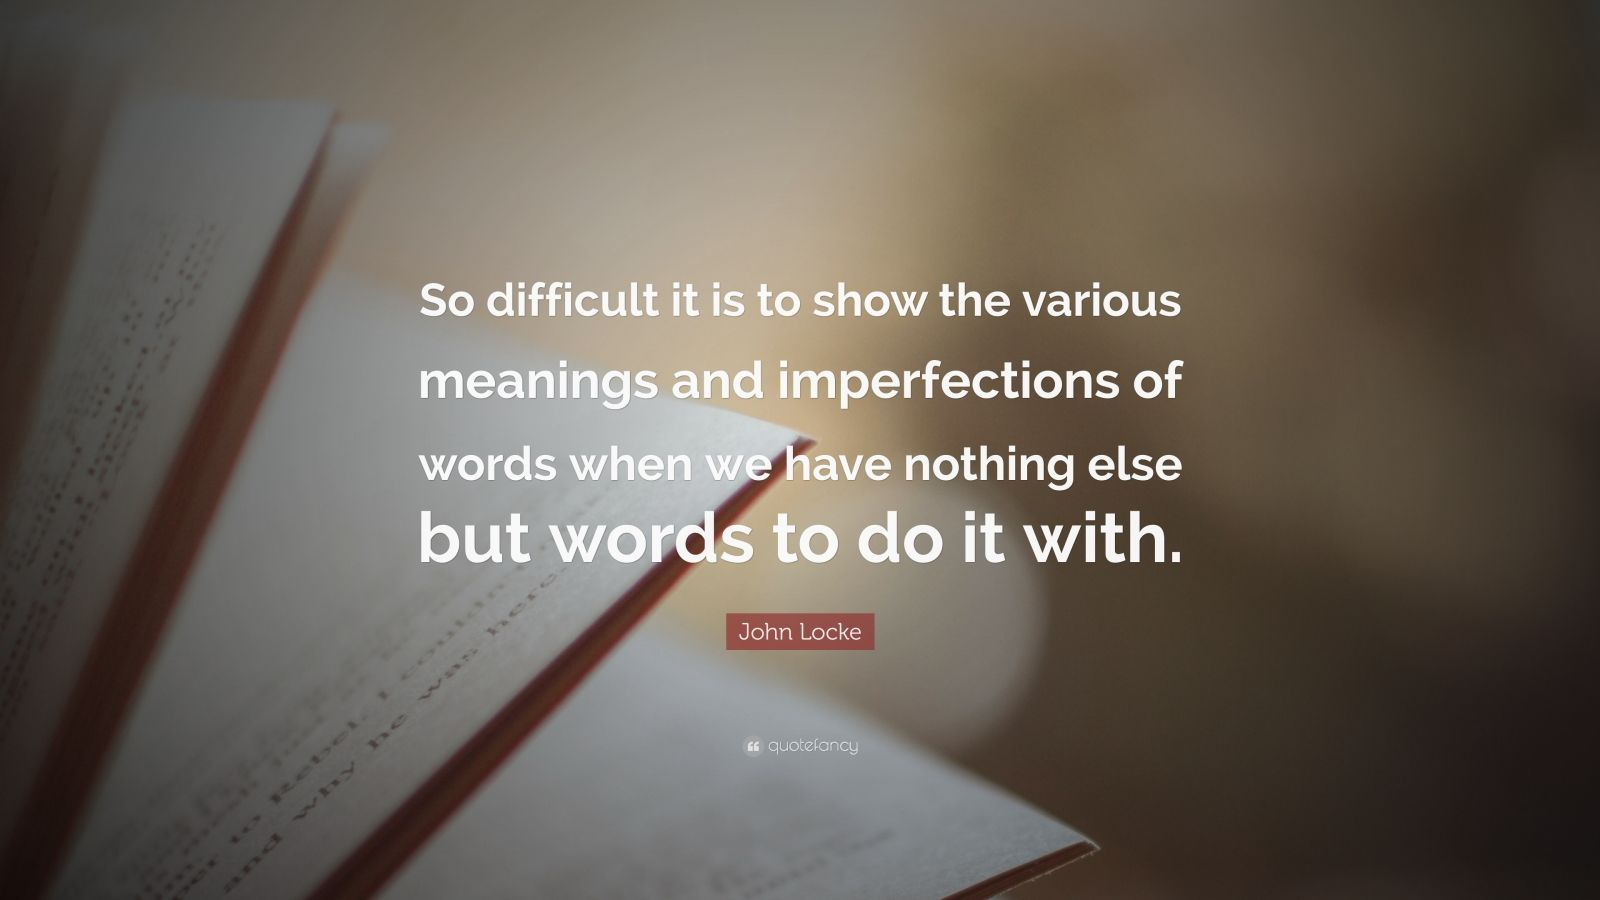 """John Locke Quote: """"So difficult it is to show the various meanings and imperfections of words when we have nothing else but words to do it with."""""""